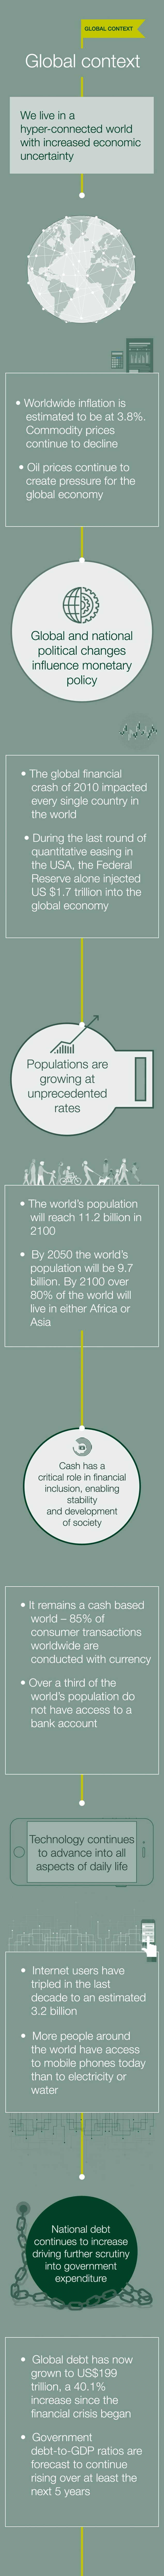 The global trends that impact this market